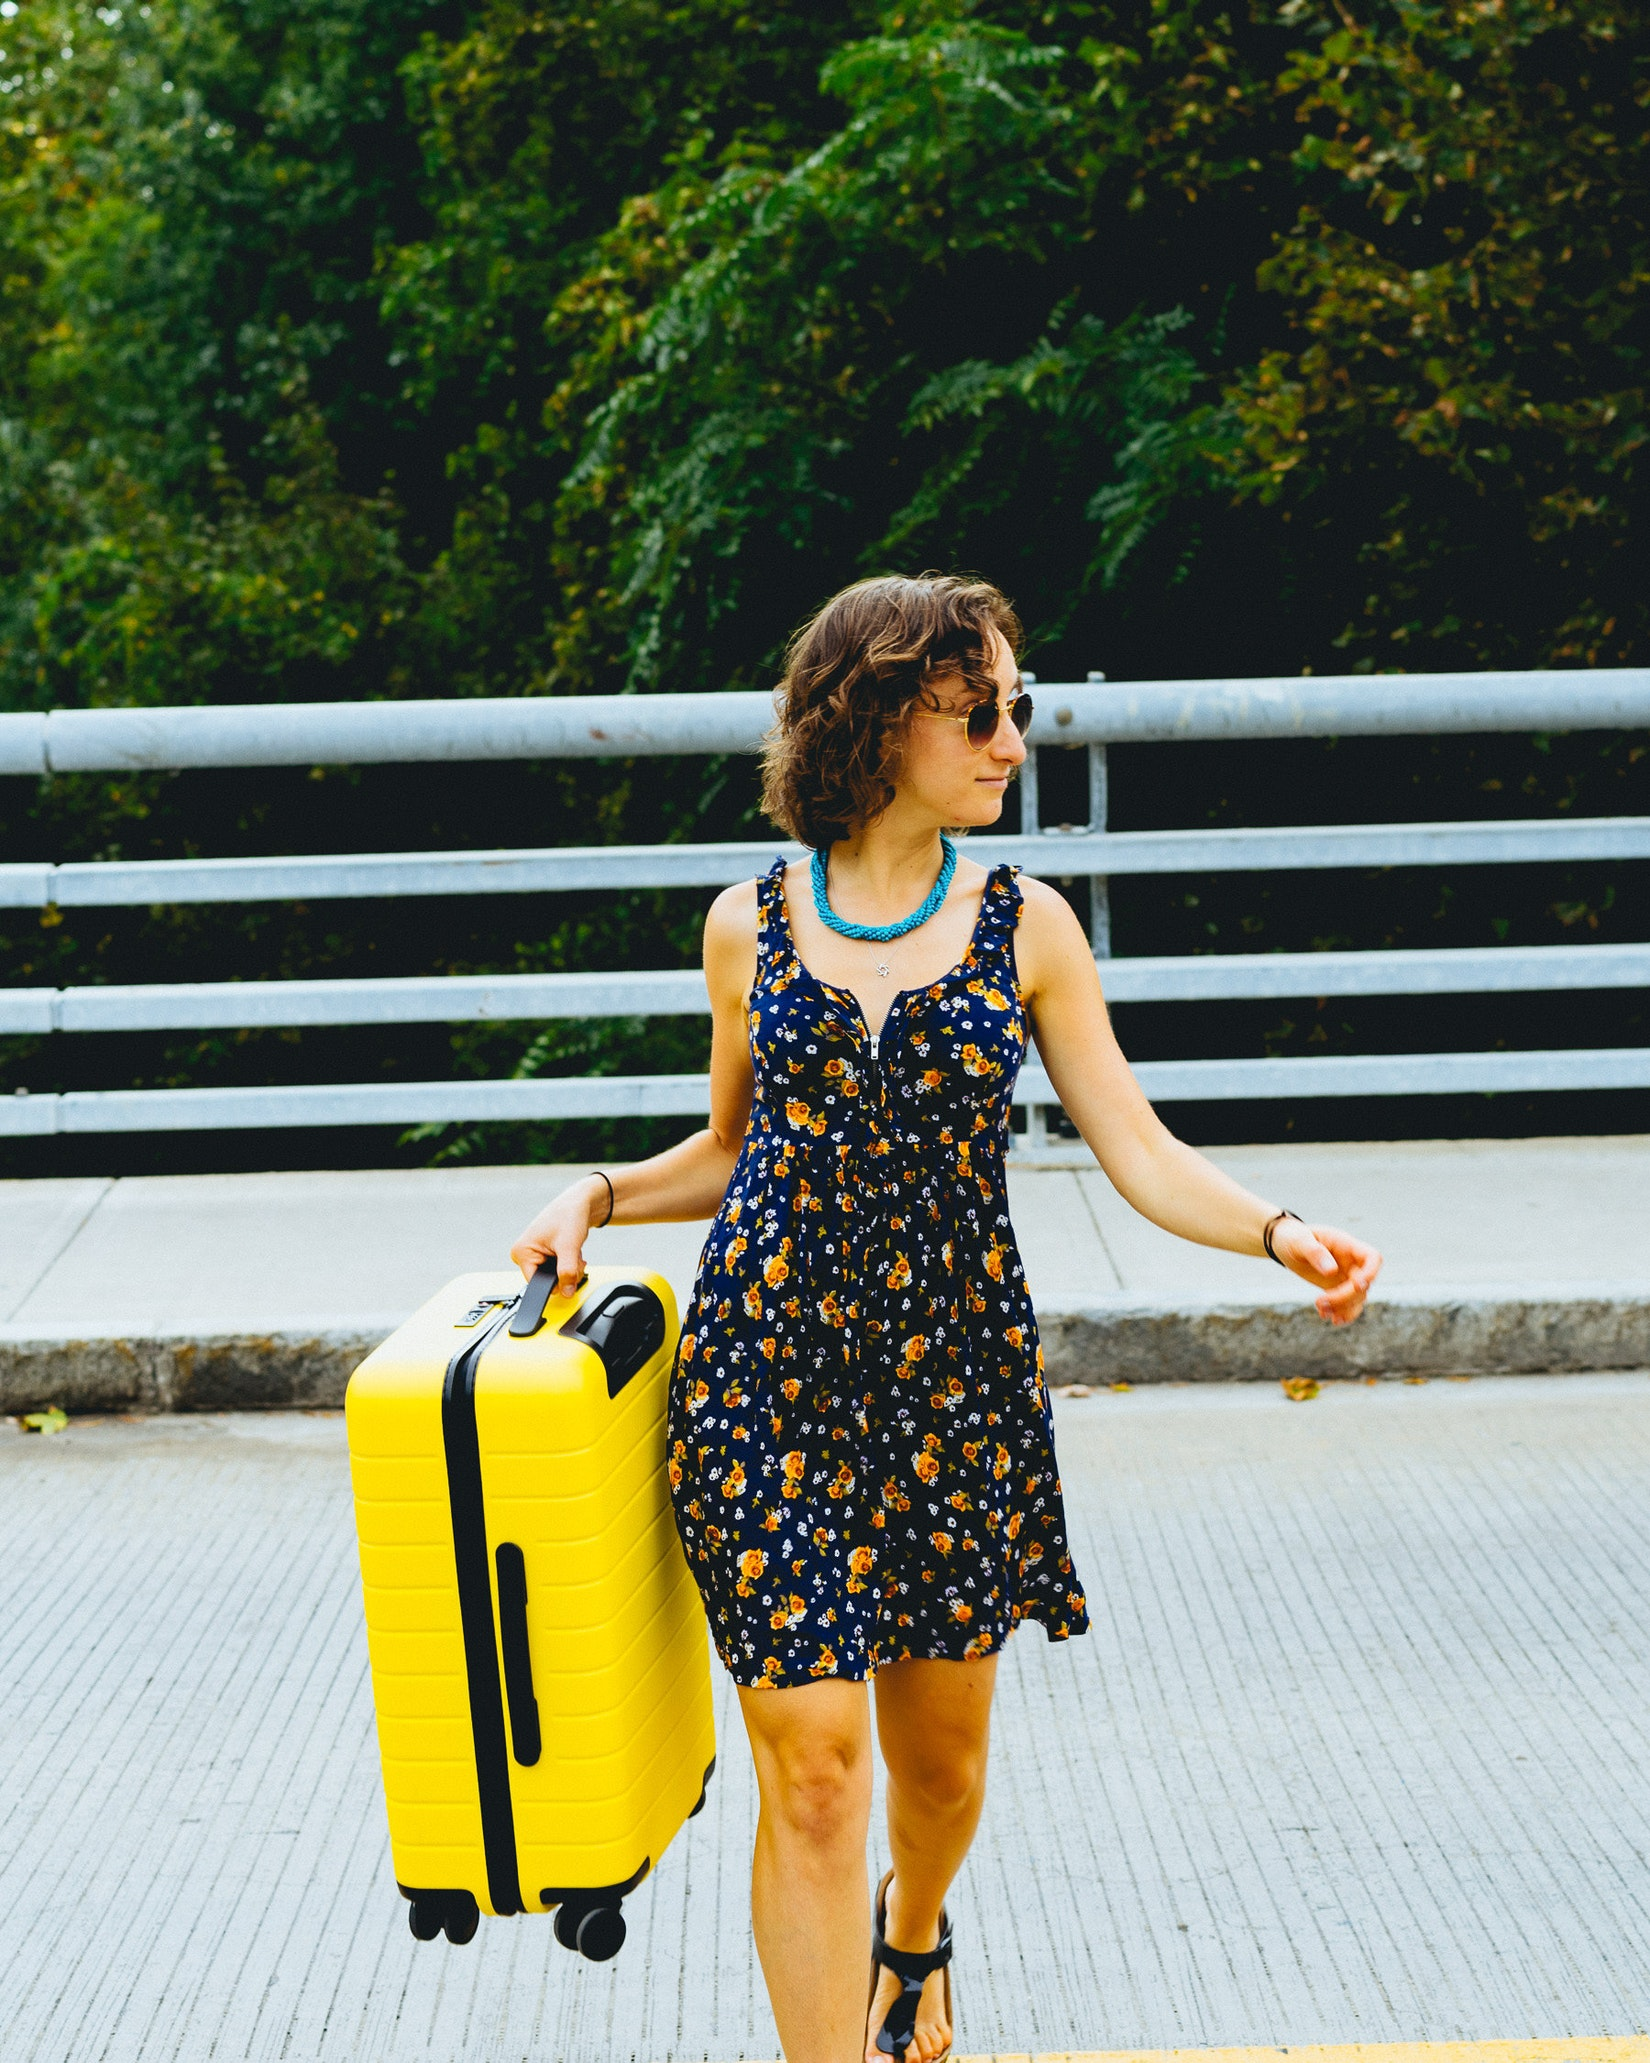 Girl not using the wheels of a suitcase even though that is a perfectly find thing to do